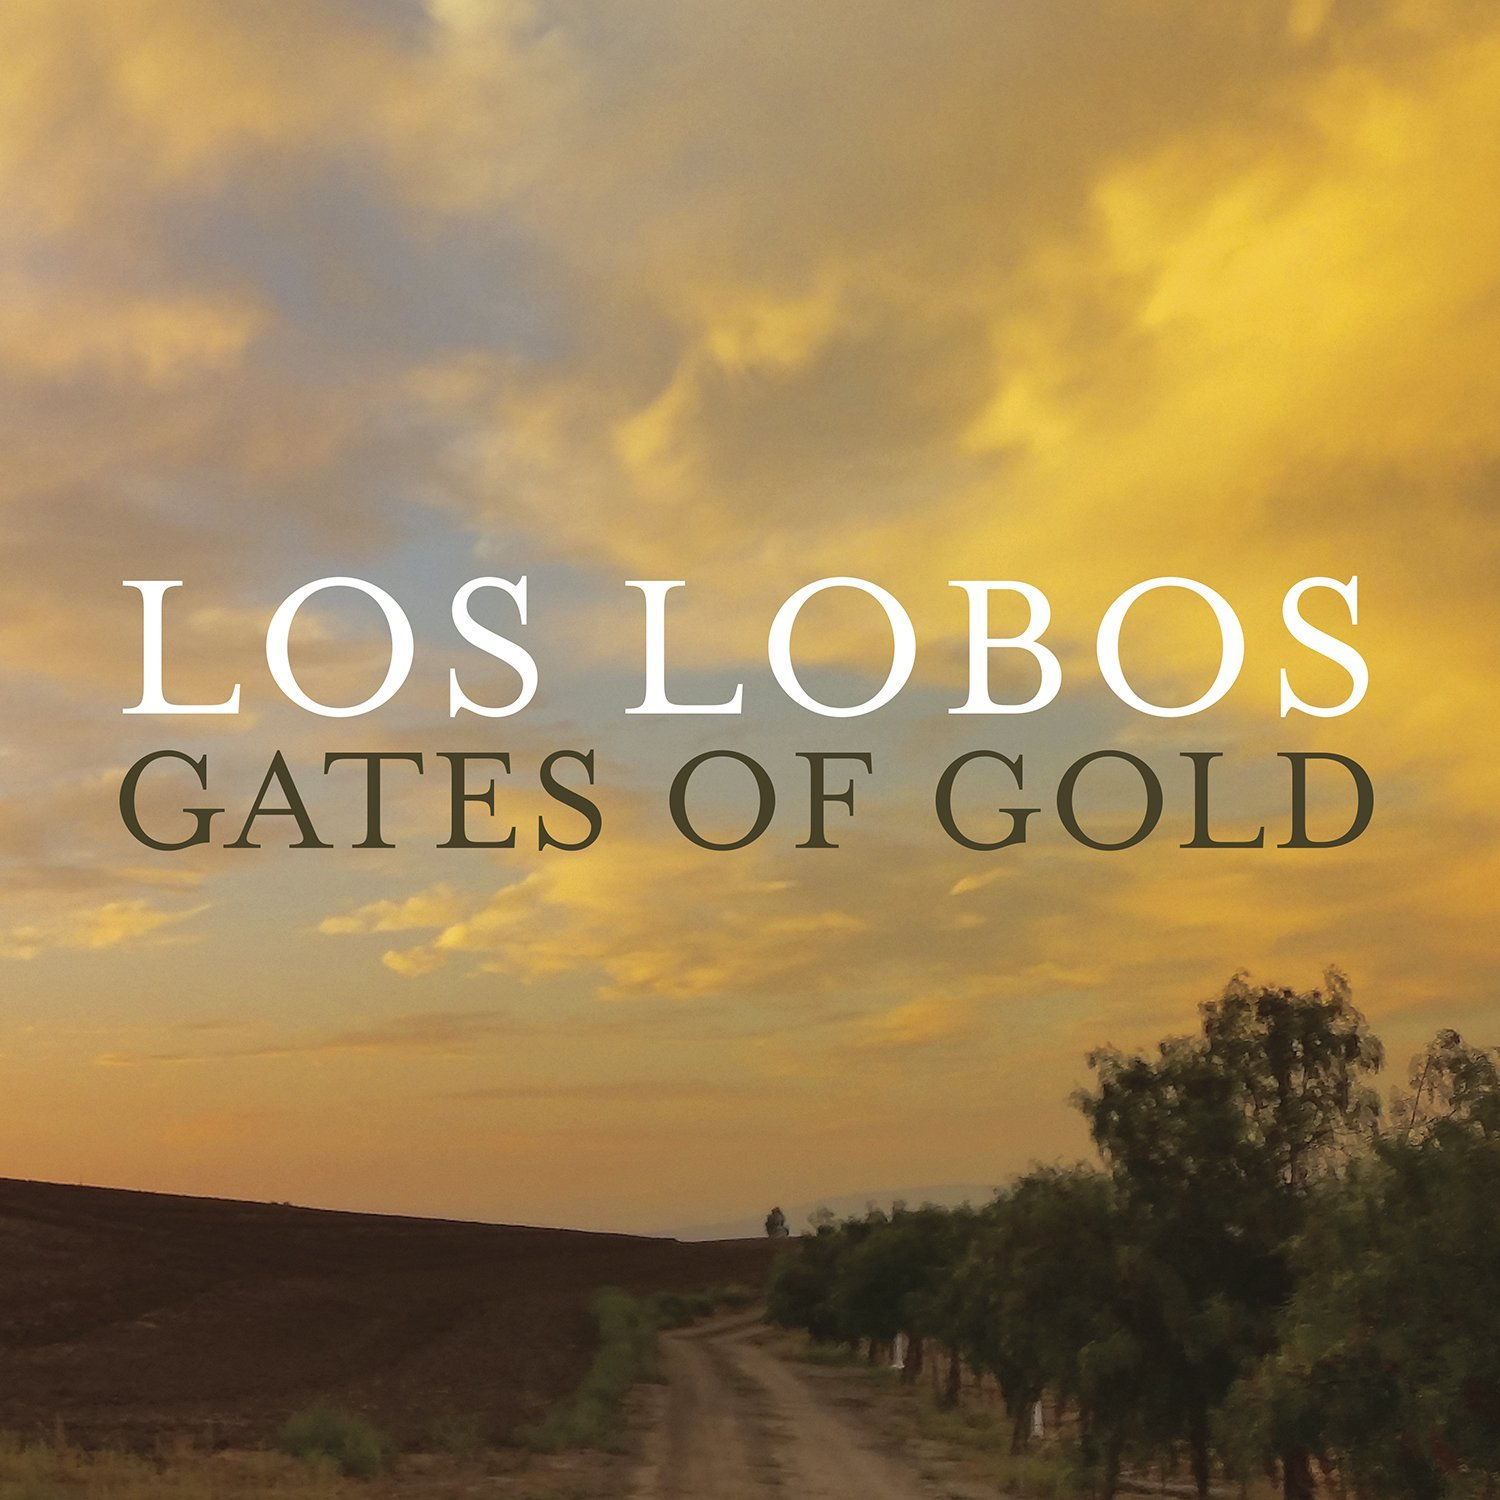 Los Lobos - Gates Of Gold - Amazon.com Music